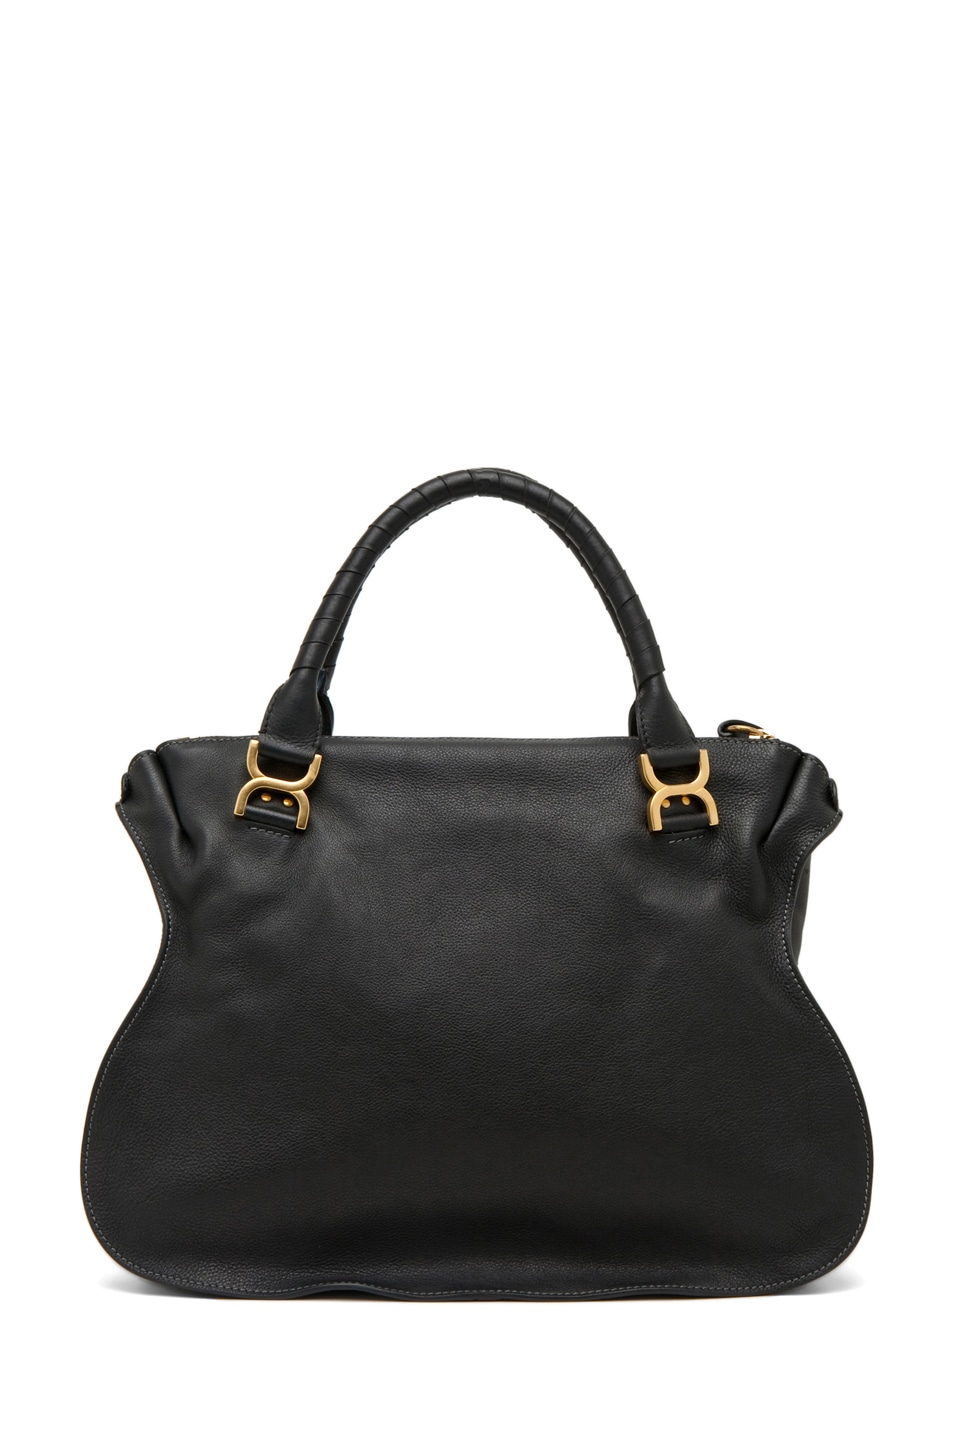 Image 2 of Chloe Large Marcie Shoulder Bag in Black